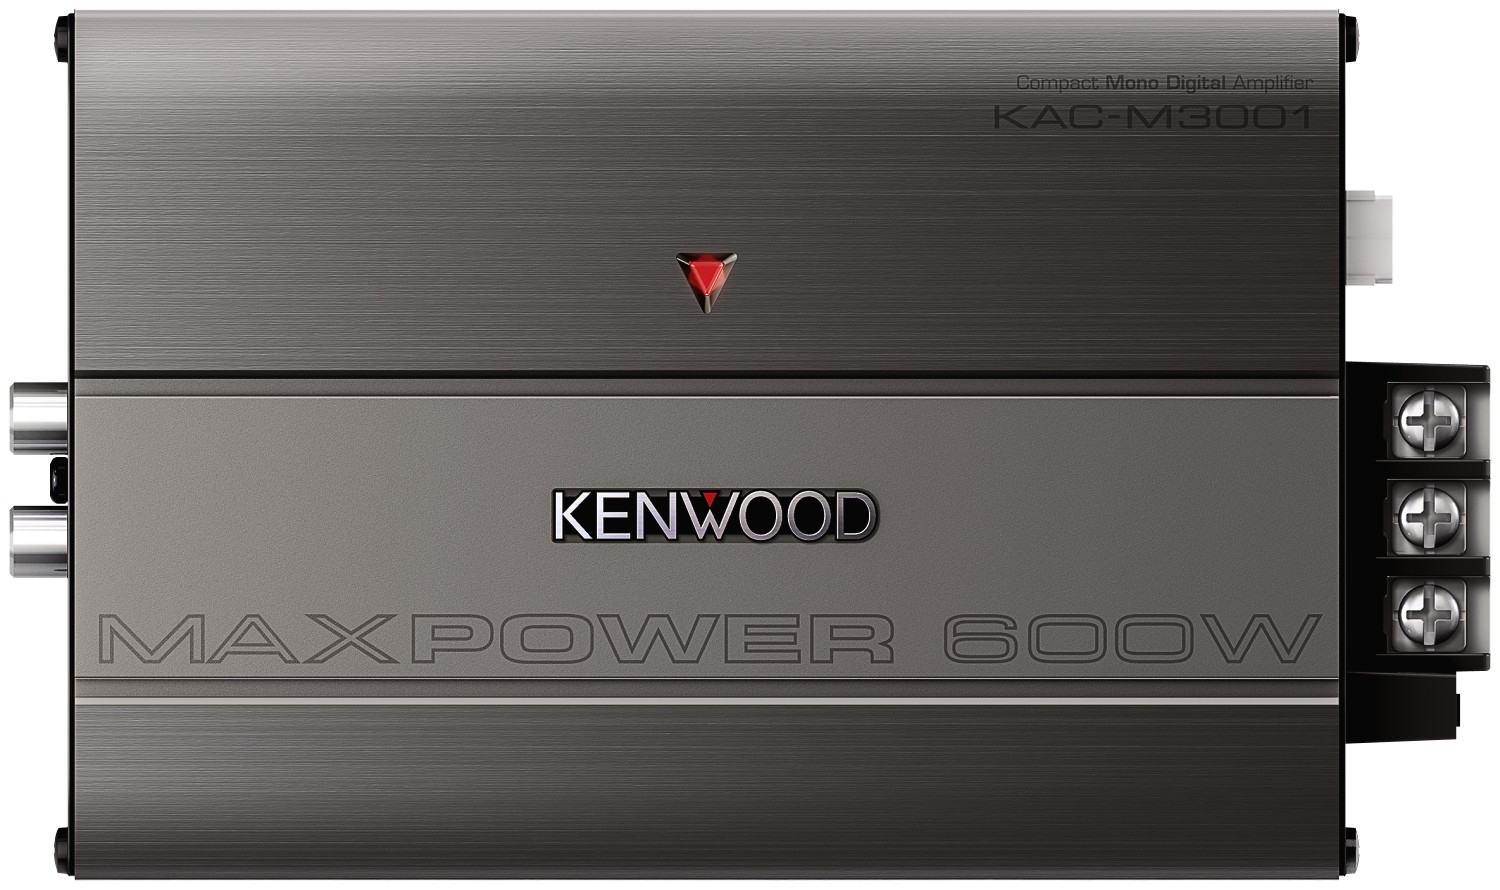 PASMAG JVC Kenwood Digital Mono Amplifier KWKAC-M3001